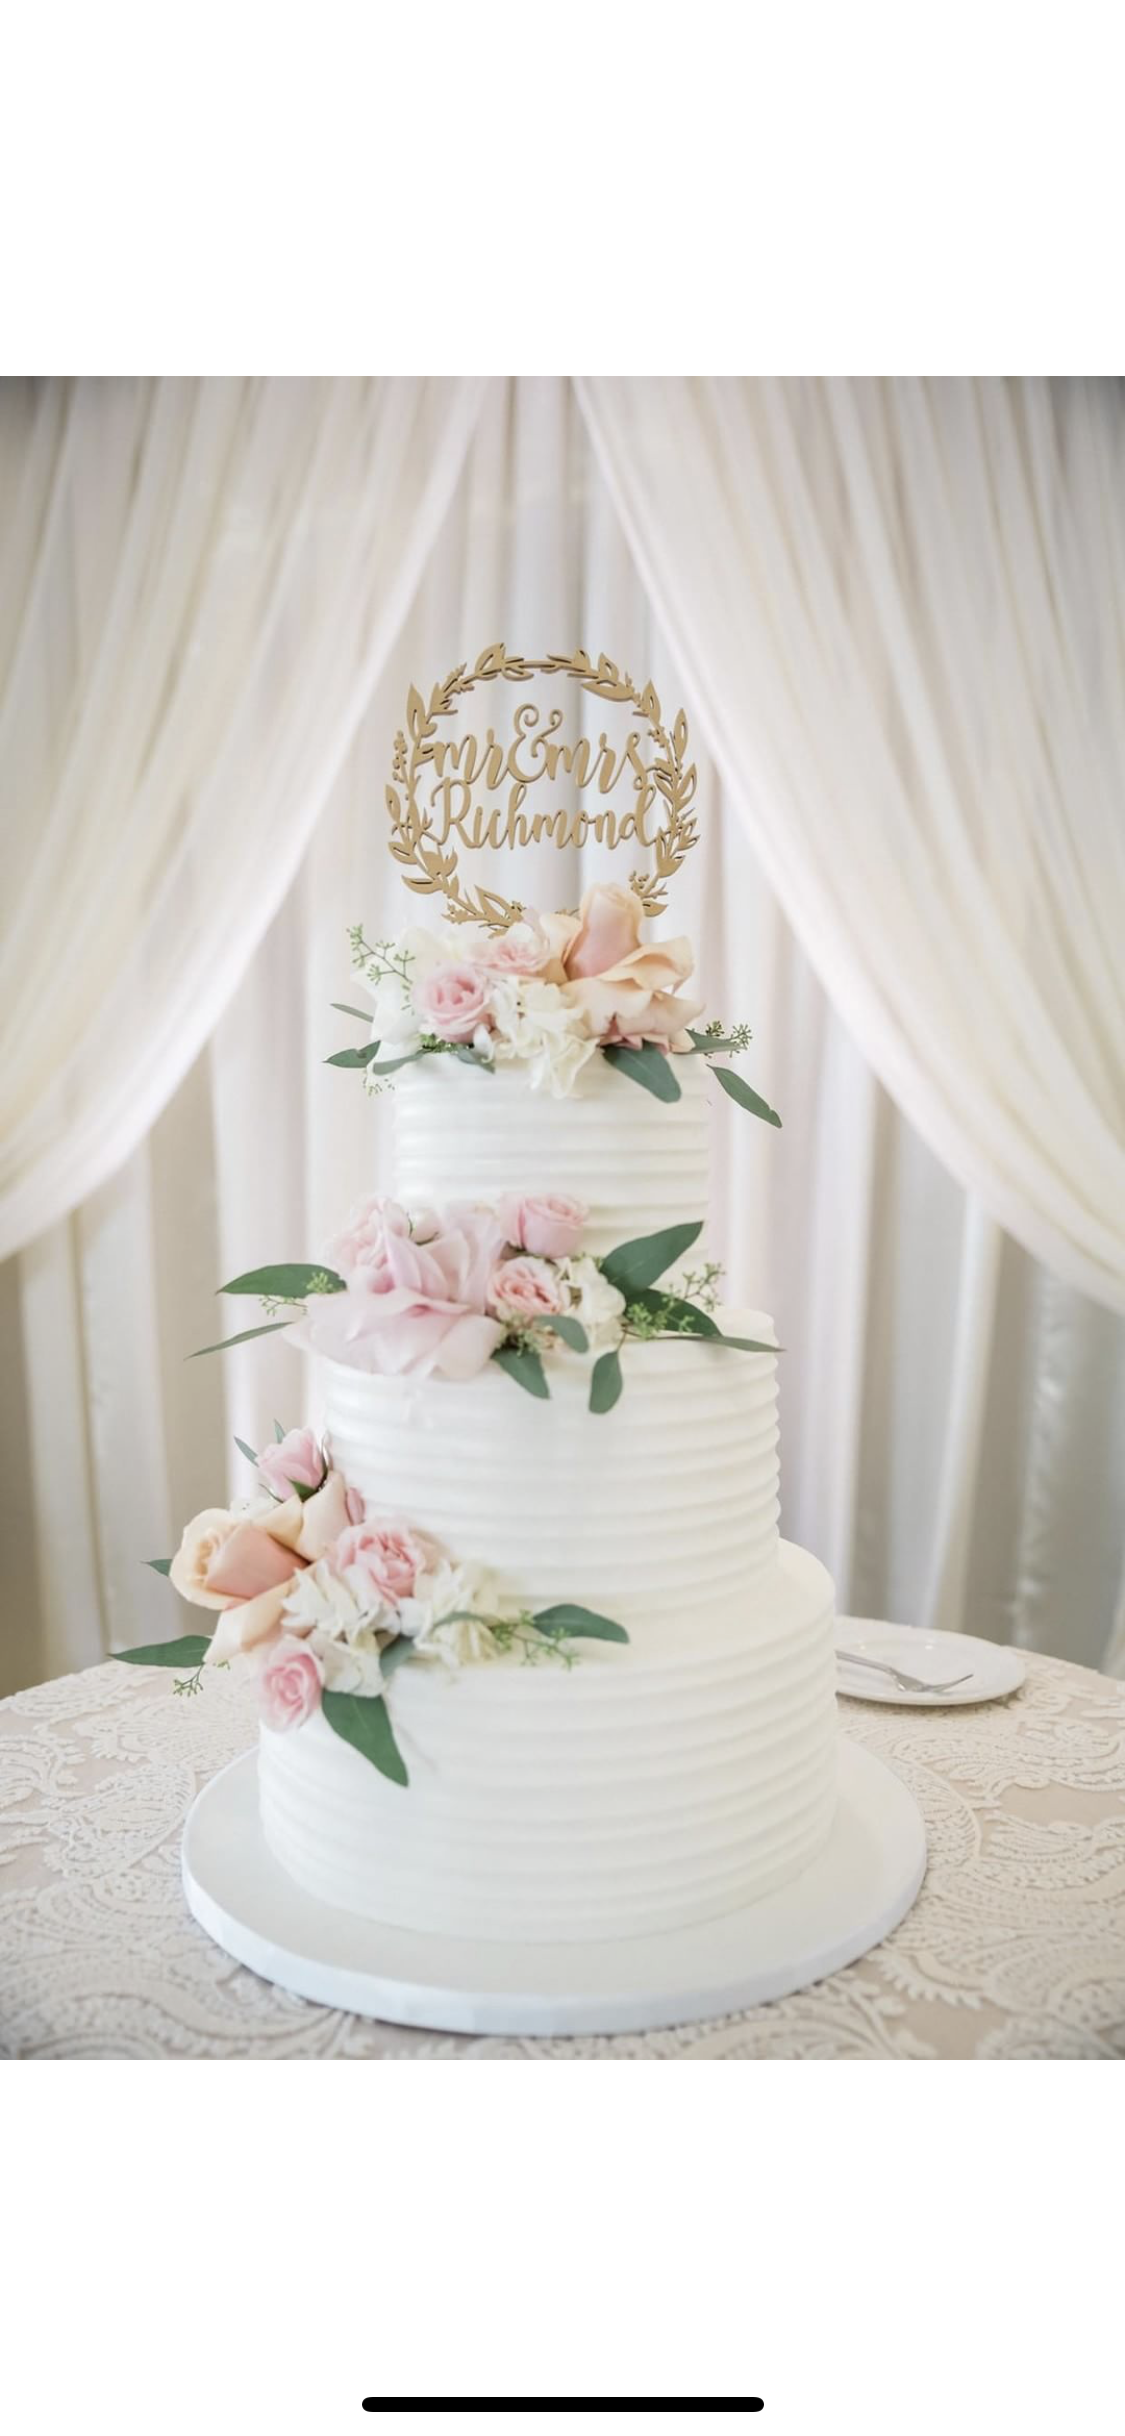 Wedding Cakes Pictures.Wedding A Cake Life